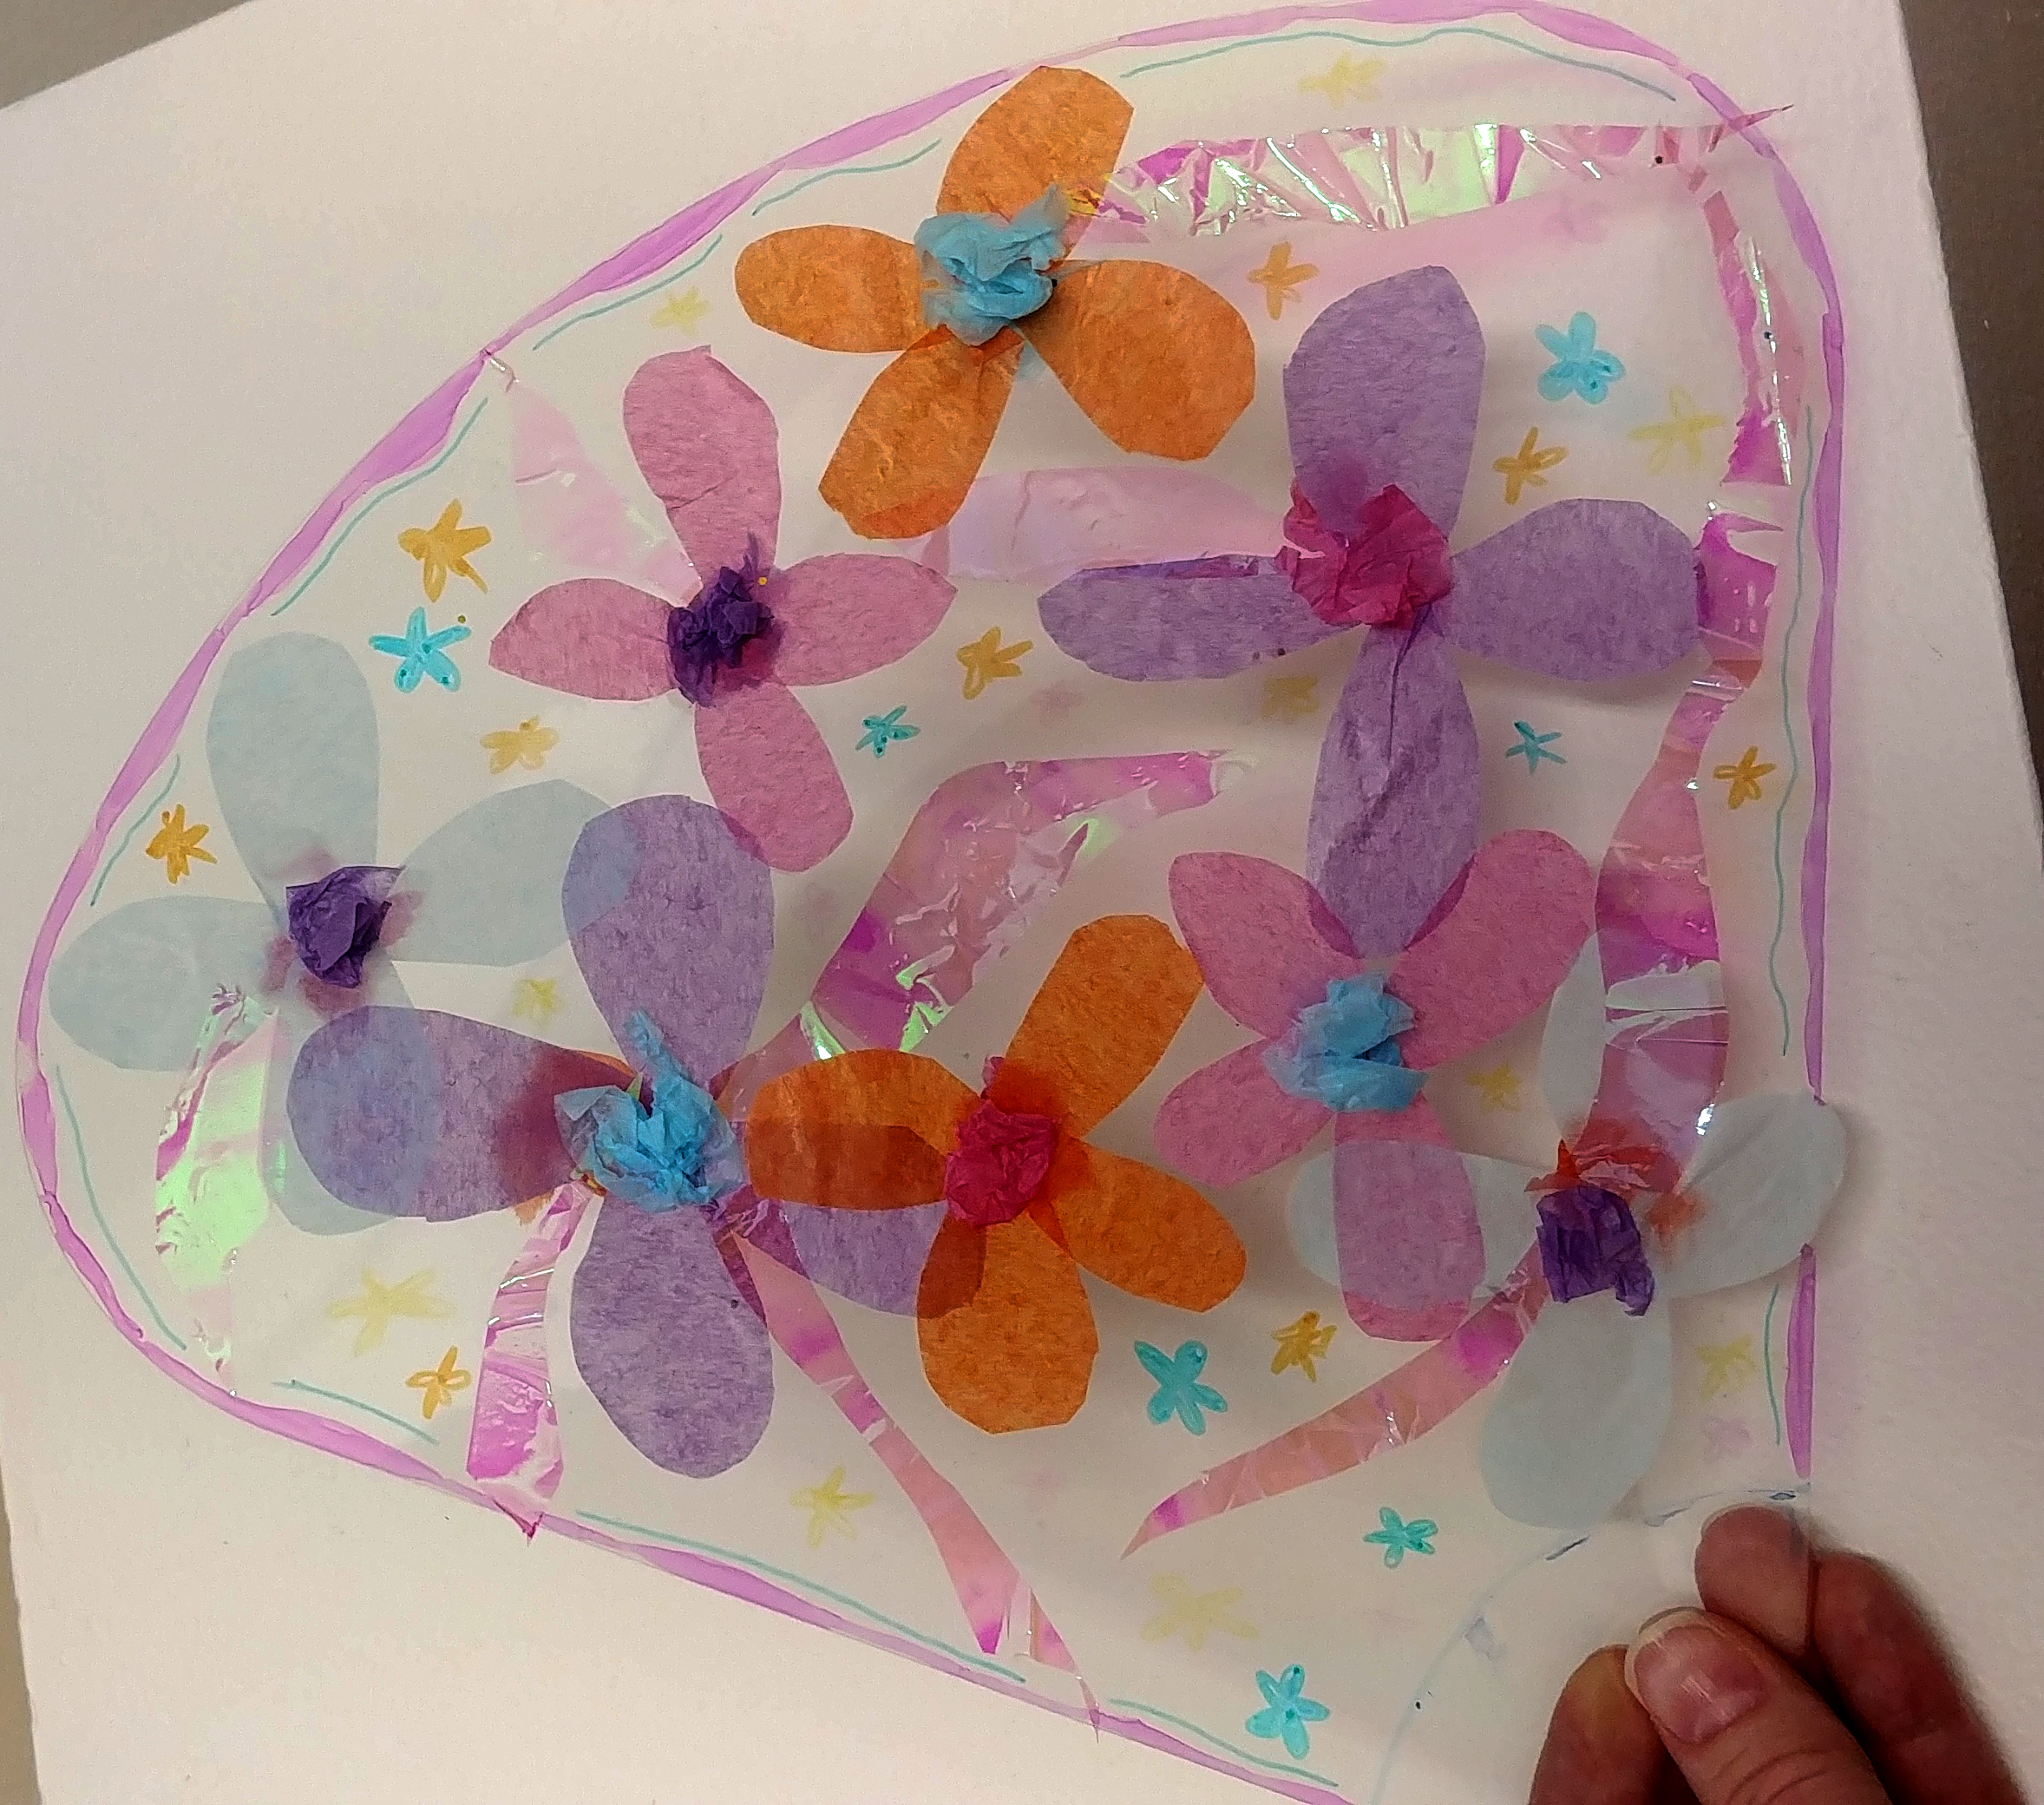 Flower petal decorated with tissue